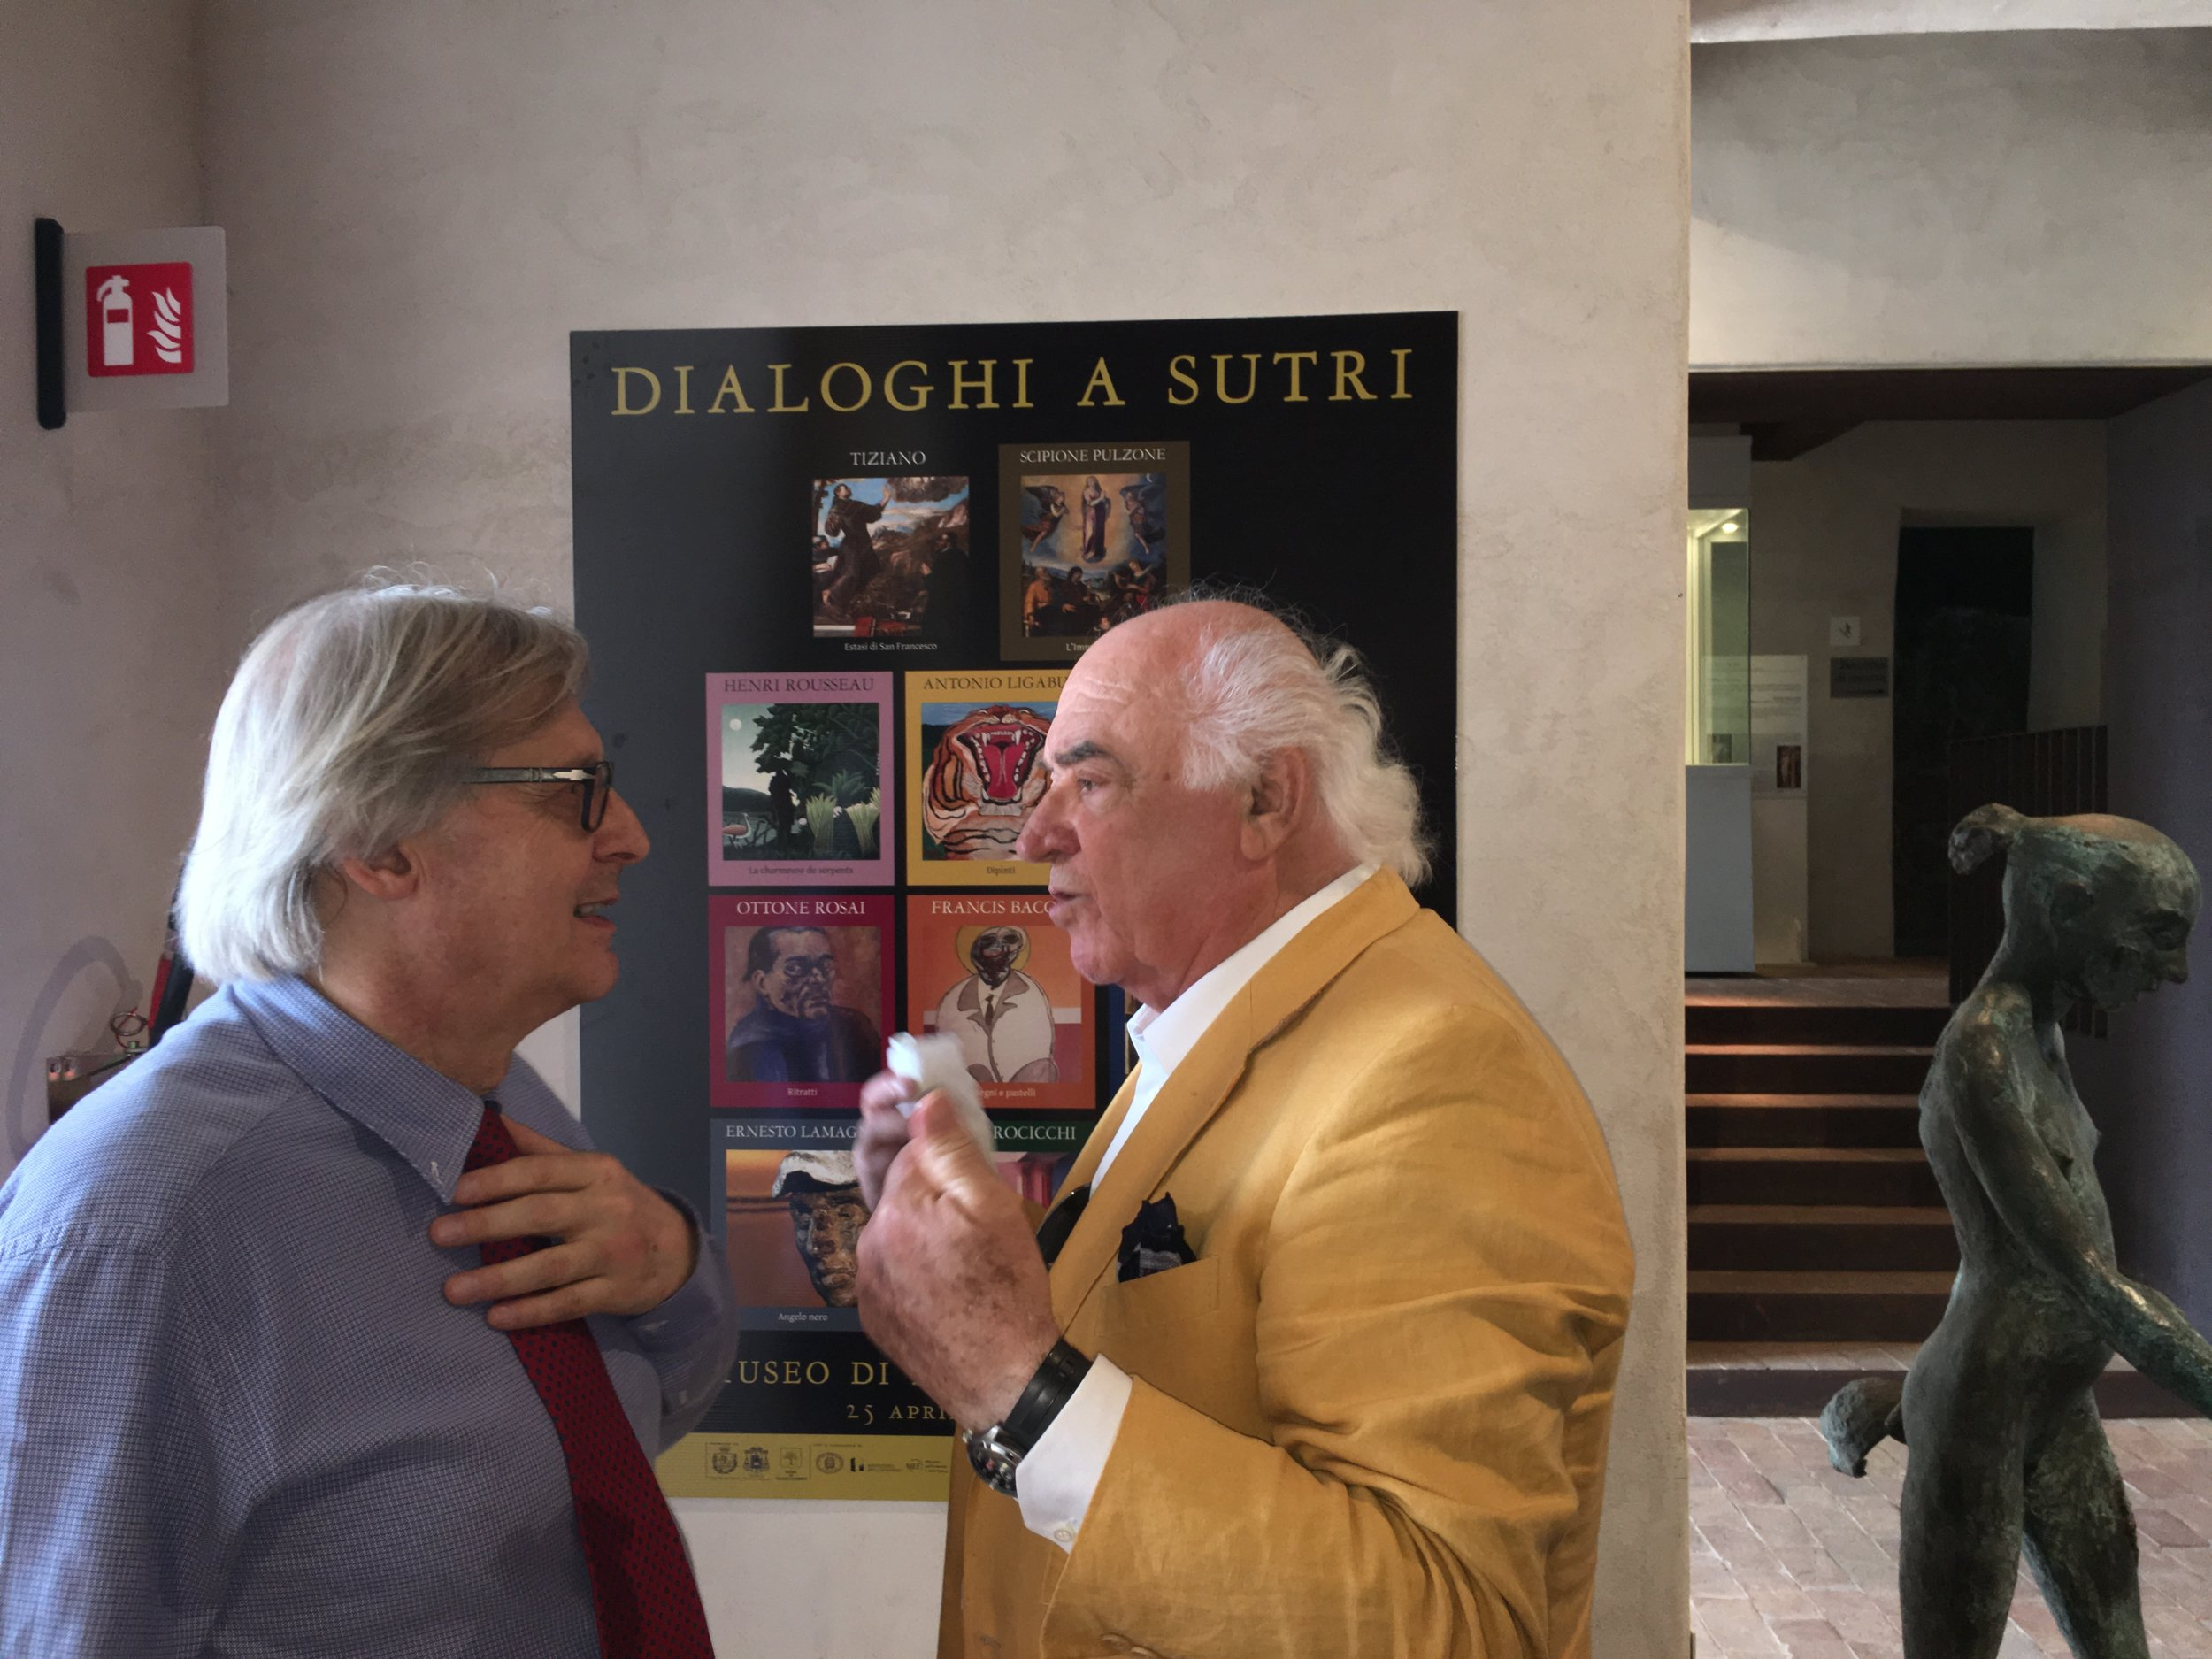 Vittorio Sgarbi and Augusto Agosta Tota at the inauguration